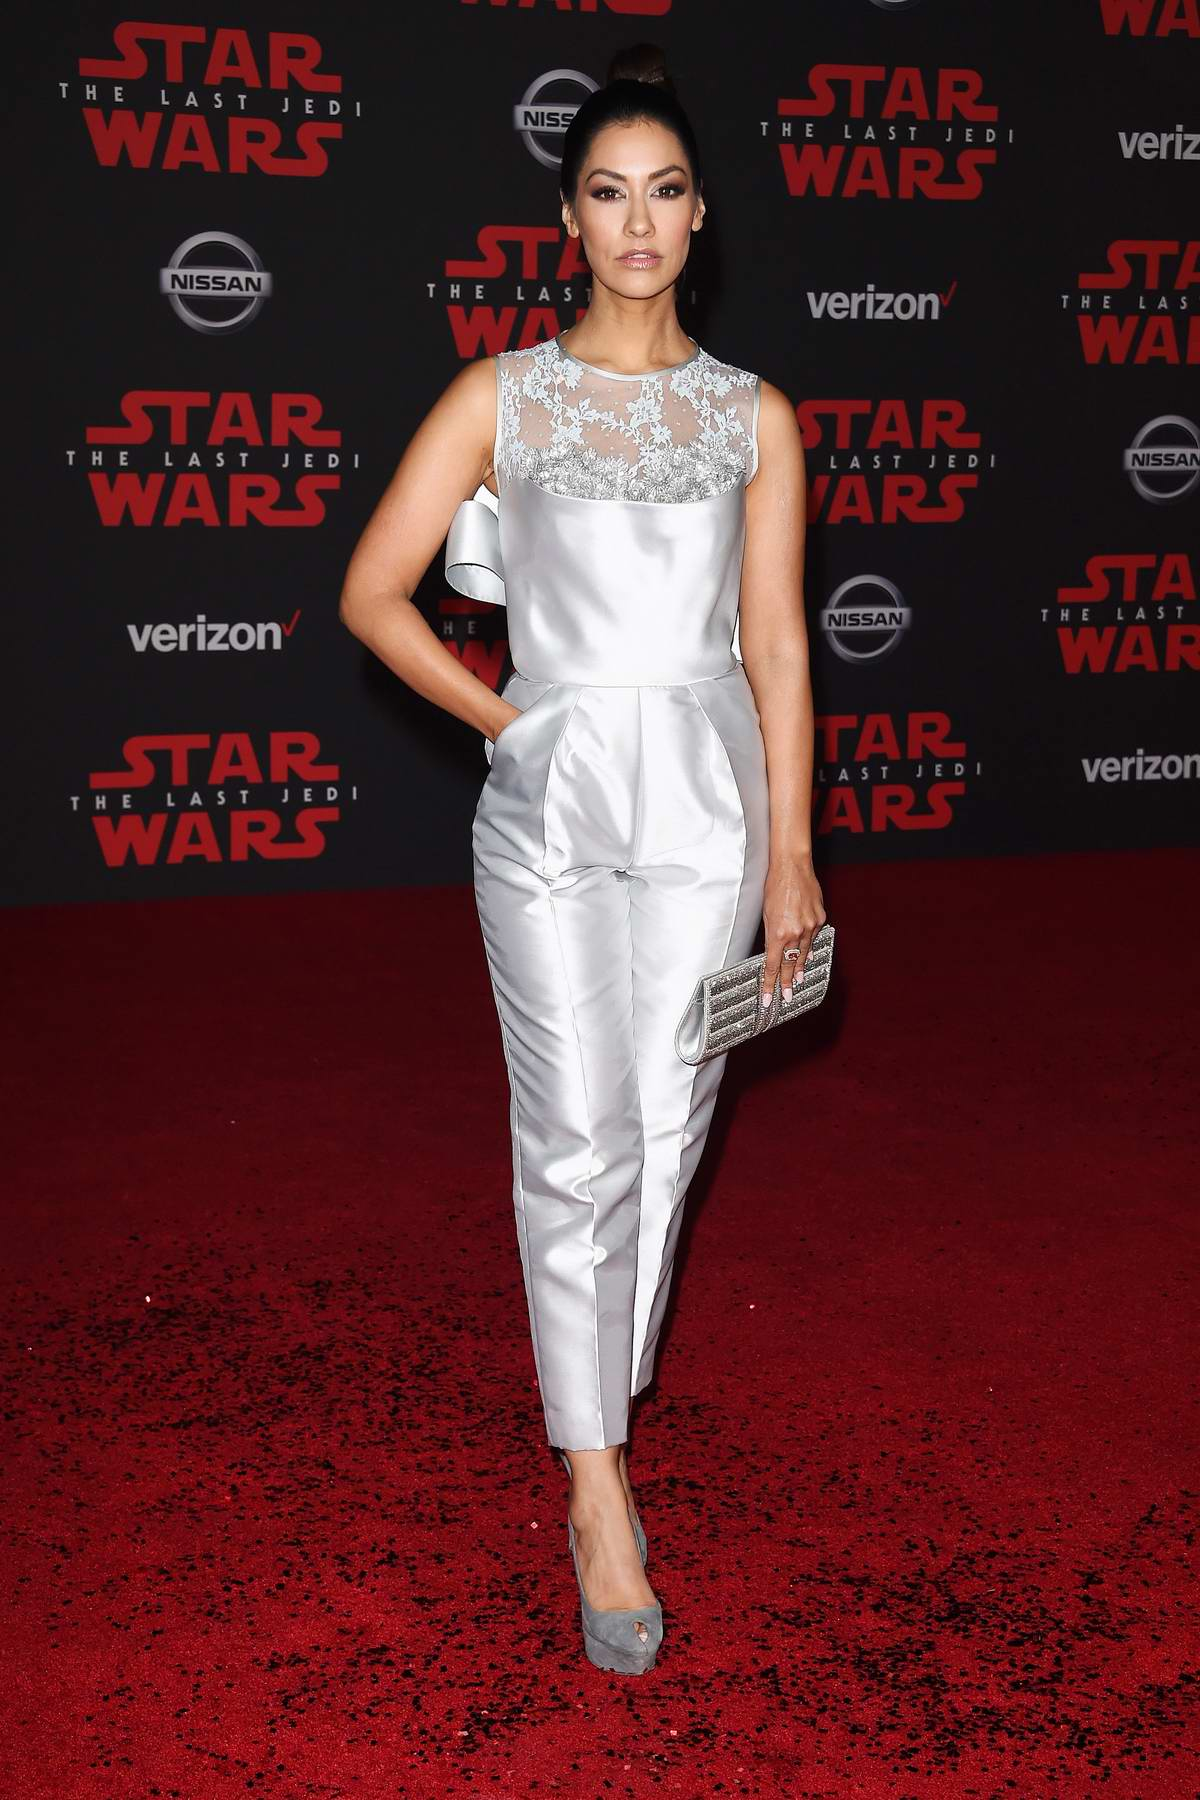 Janina Gavankar at the World premiere for 'Star Wars: The Last Jedi' at the Shrine Auditorium in Los Angeles